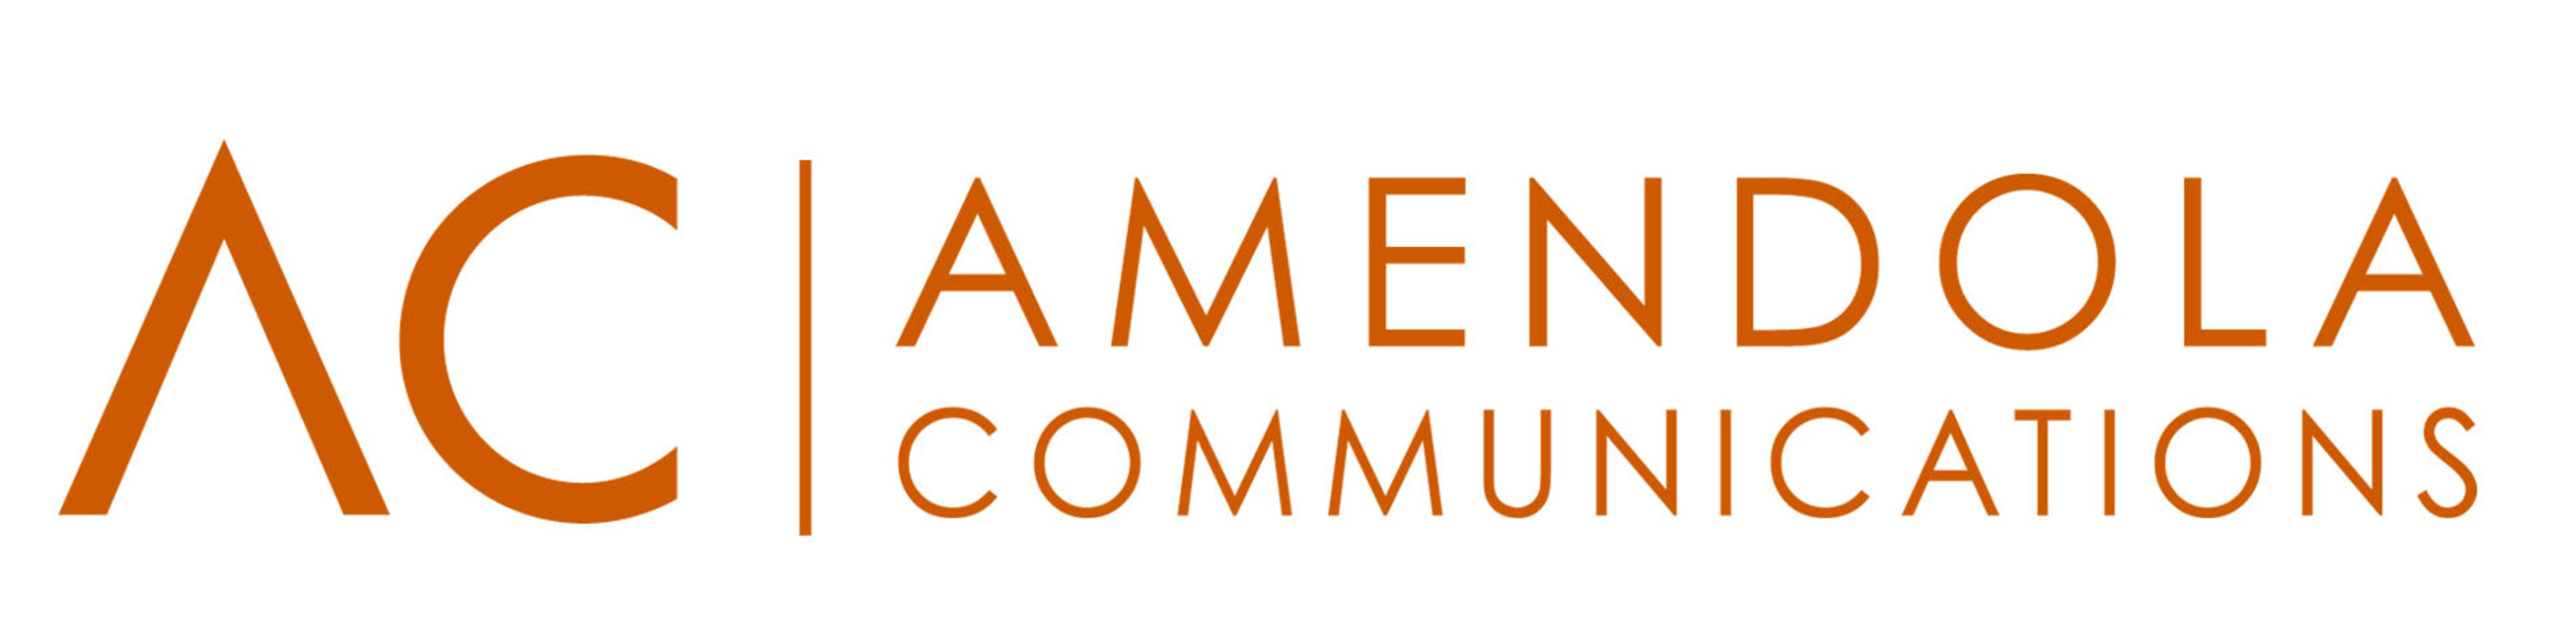 Amendola Communications is a full-service, national public relations, social media and marketing communications firm serving the healthcare, healthcare IT, pharmaceutical and high tech industries.